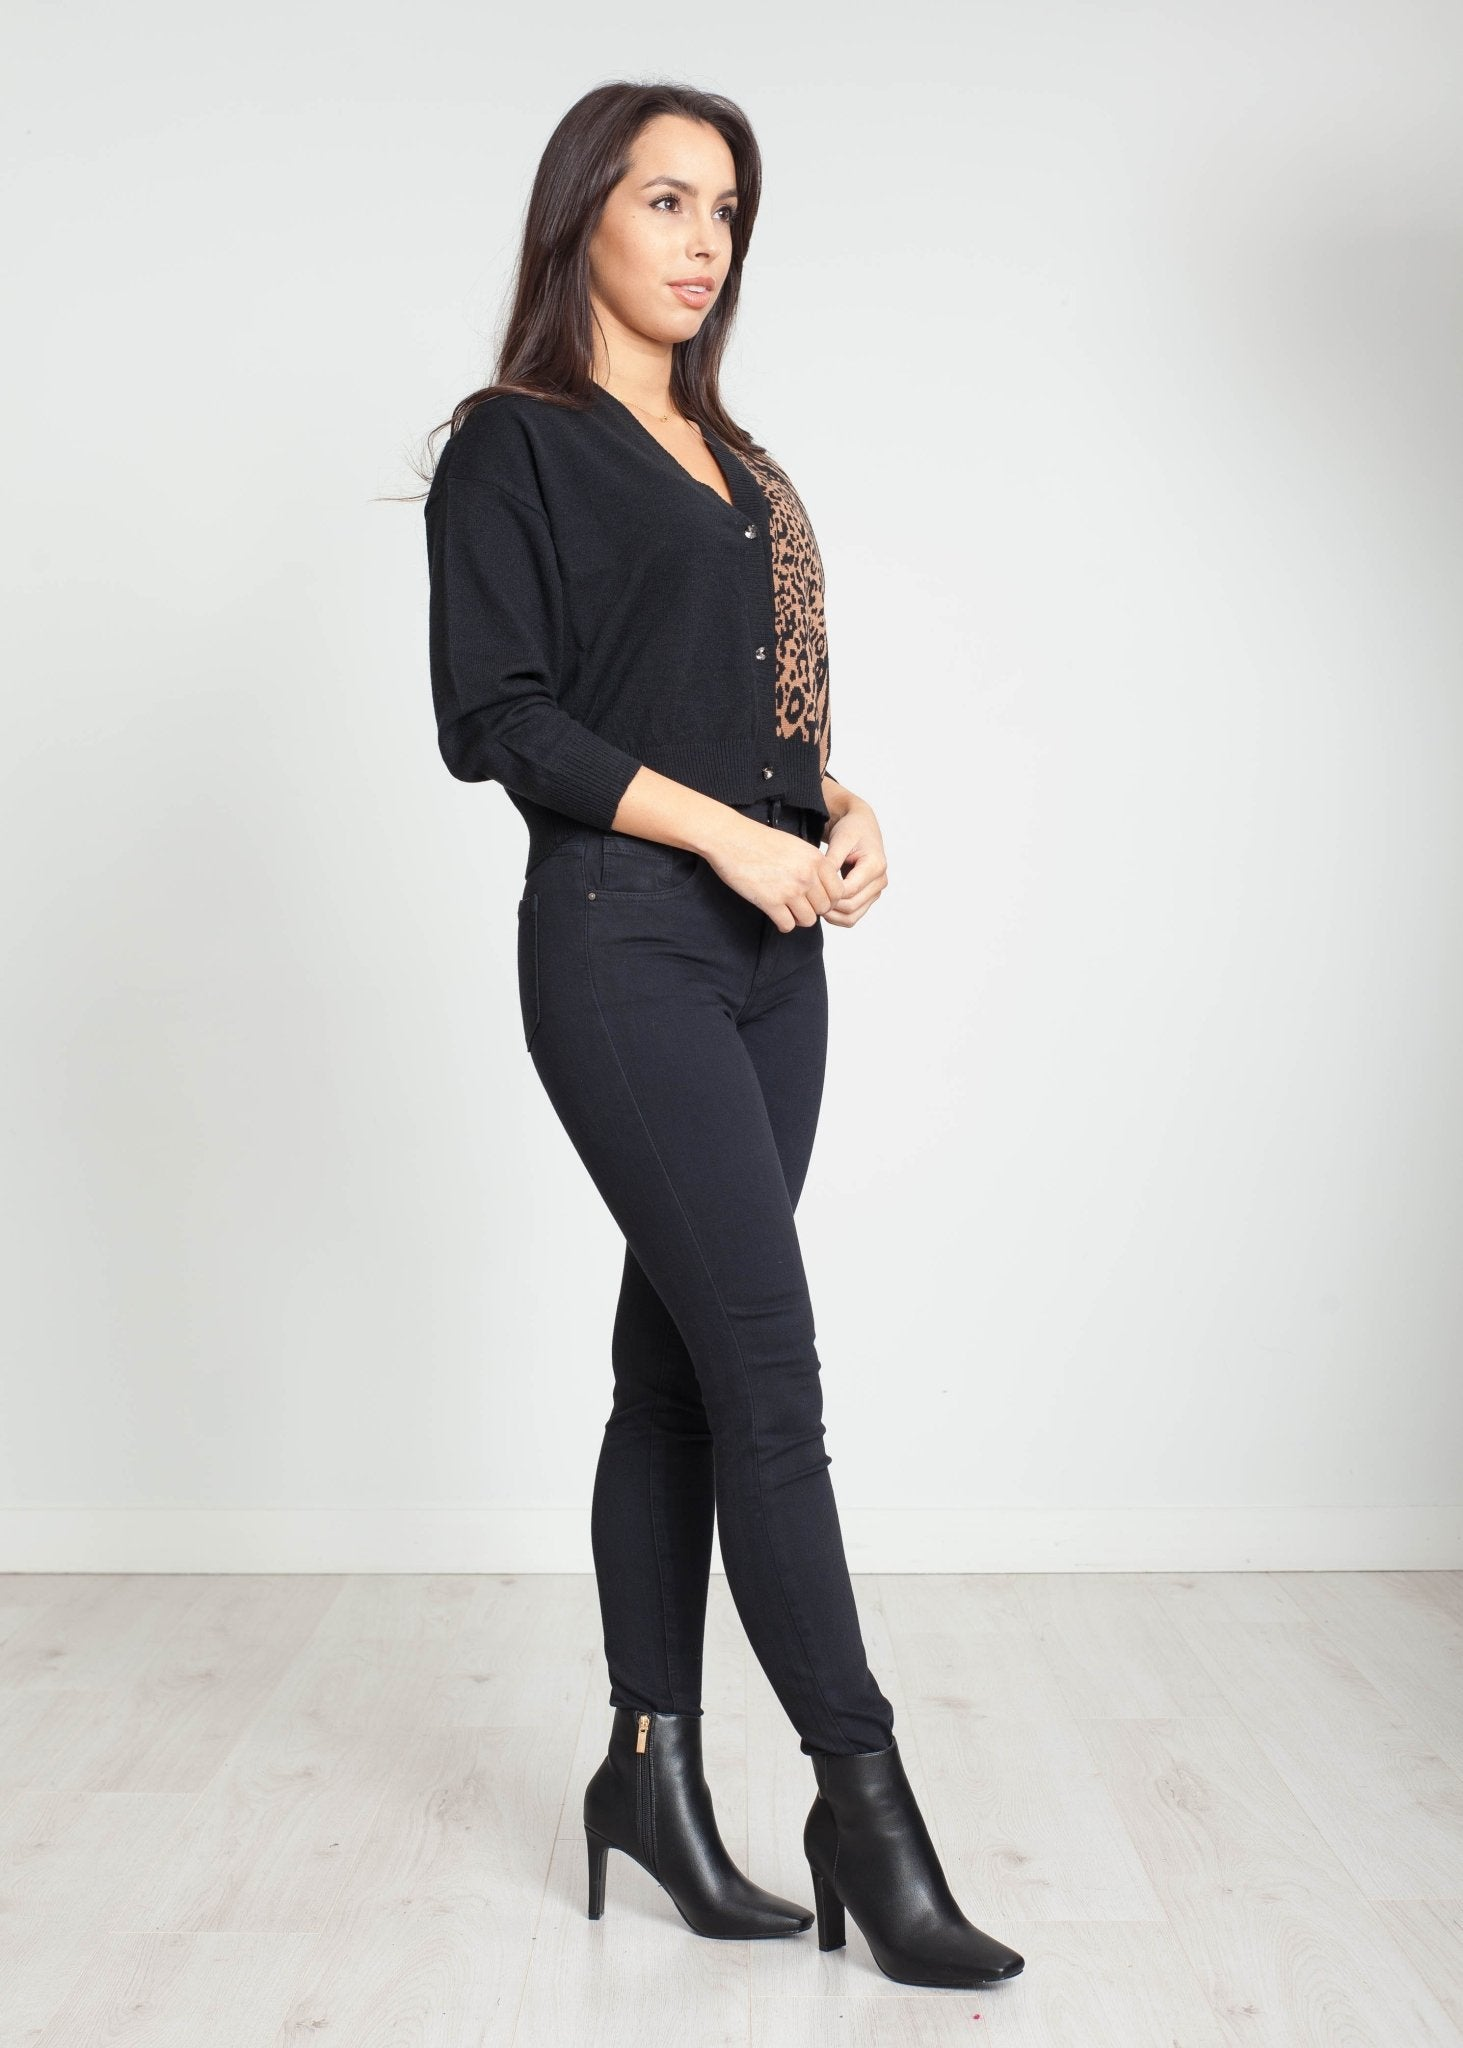 Tina Cardigan In Black Animal Print - The Walk in Wardrobe